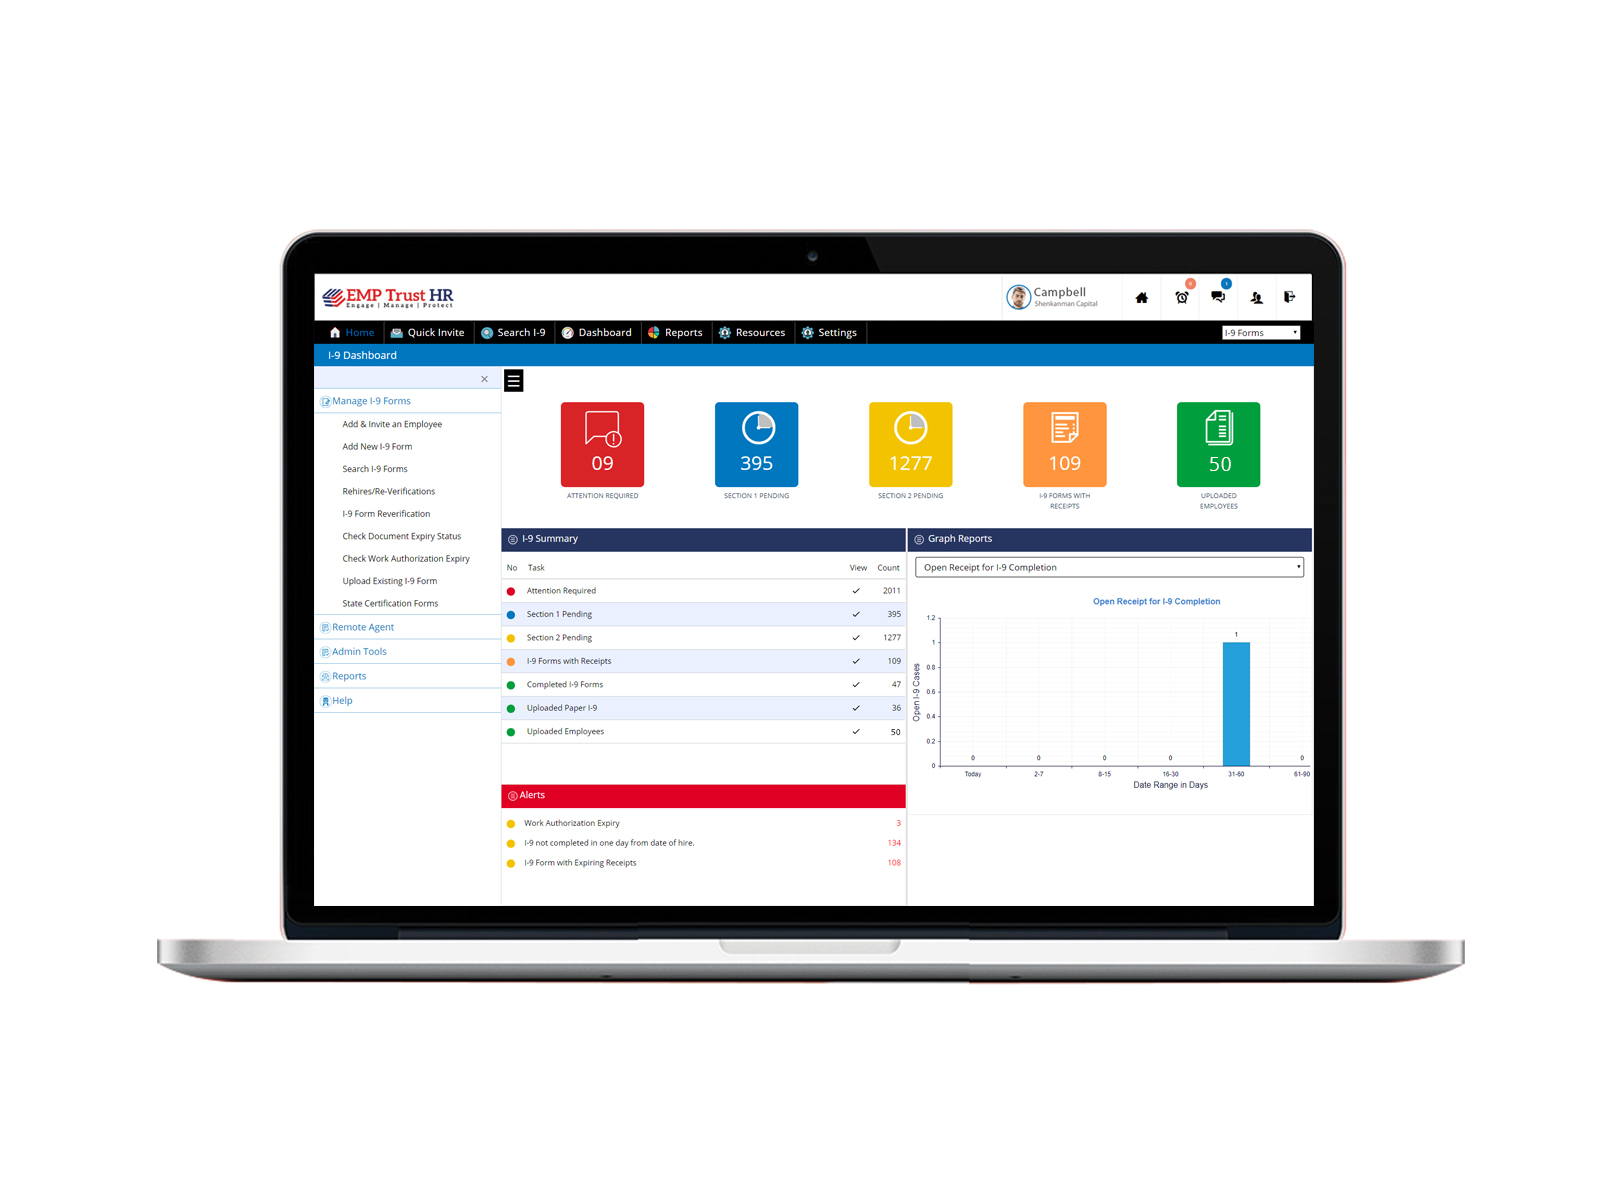 Key Metrics provides alerts for pending action and complete required i-9 forms